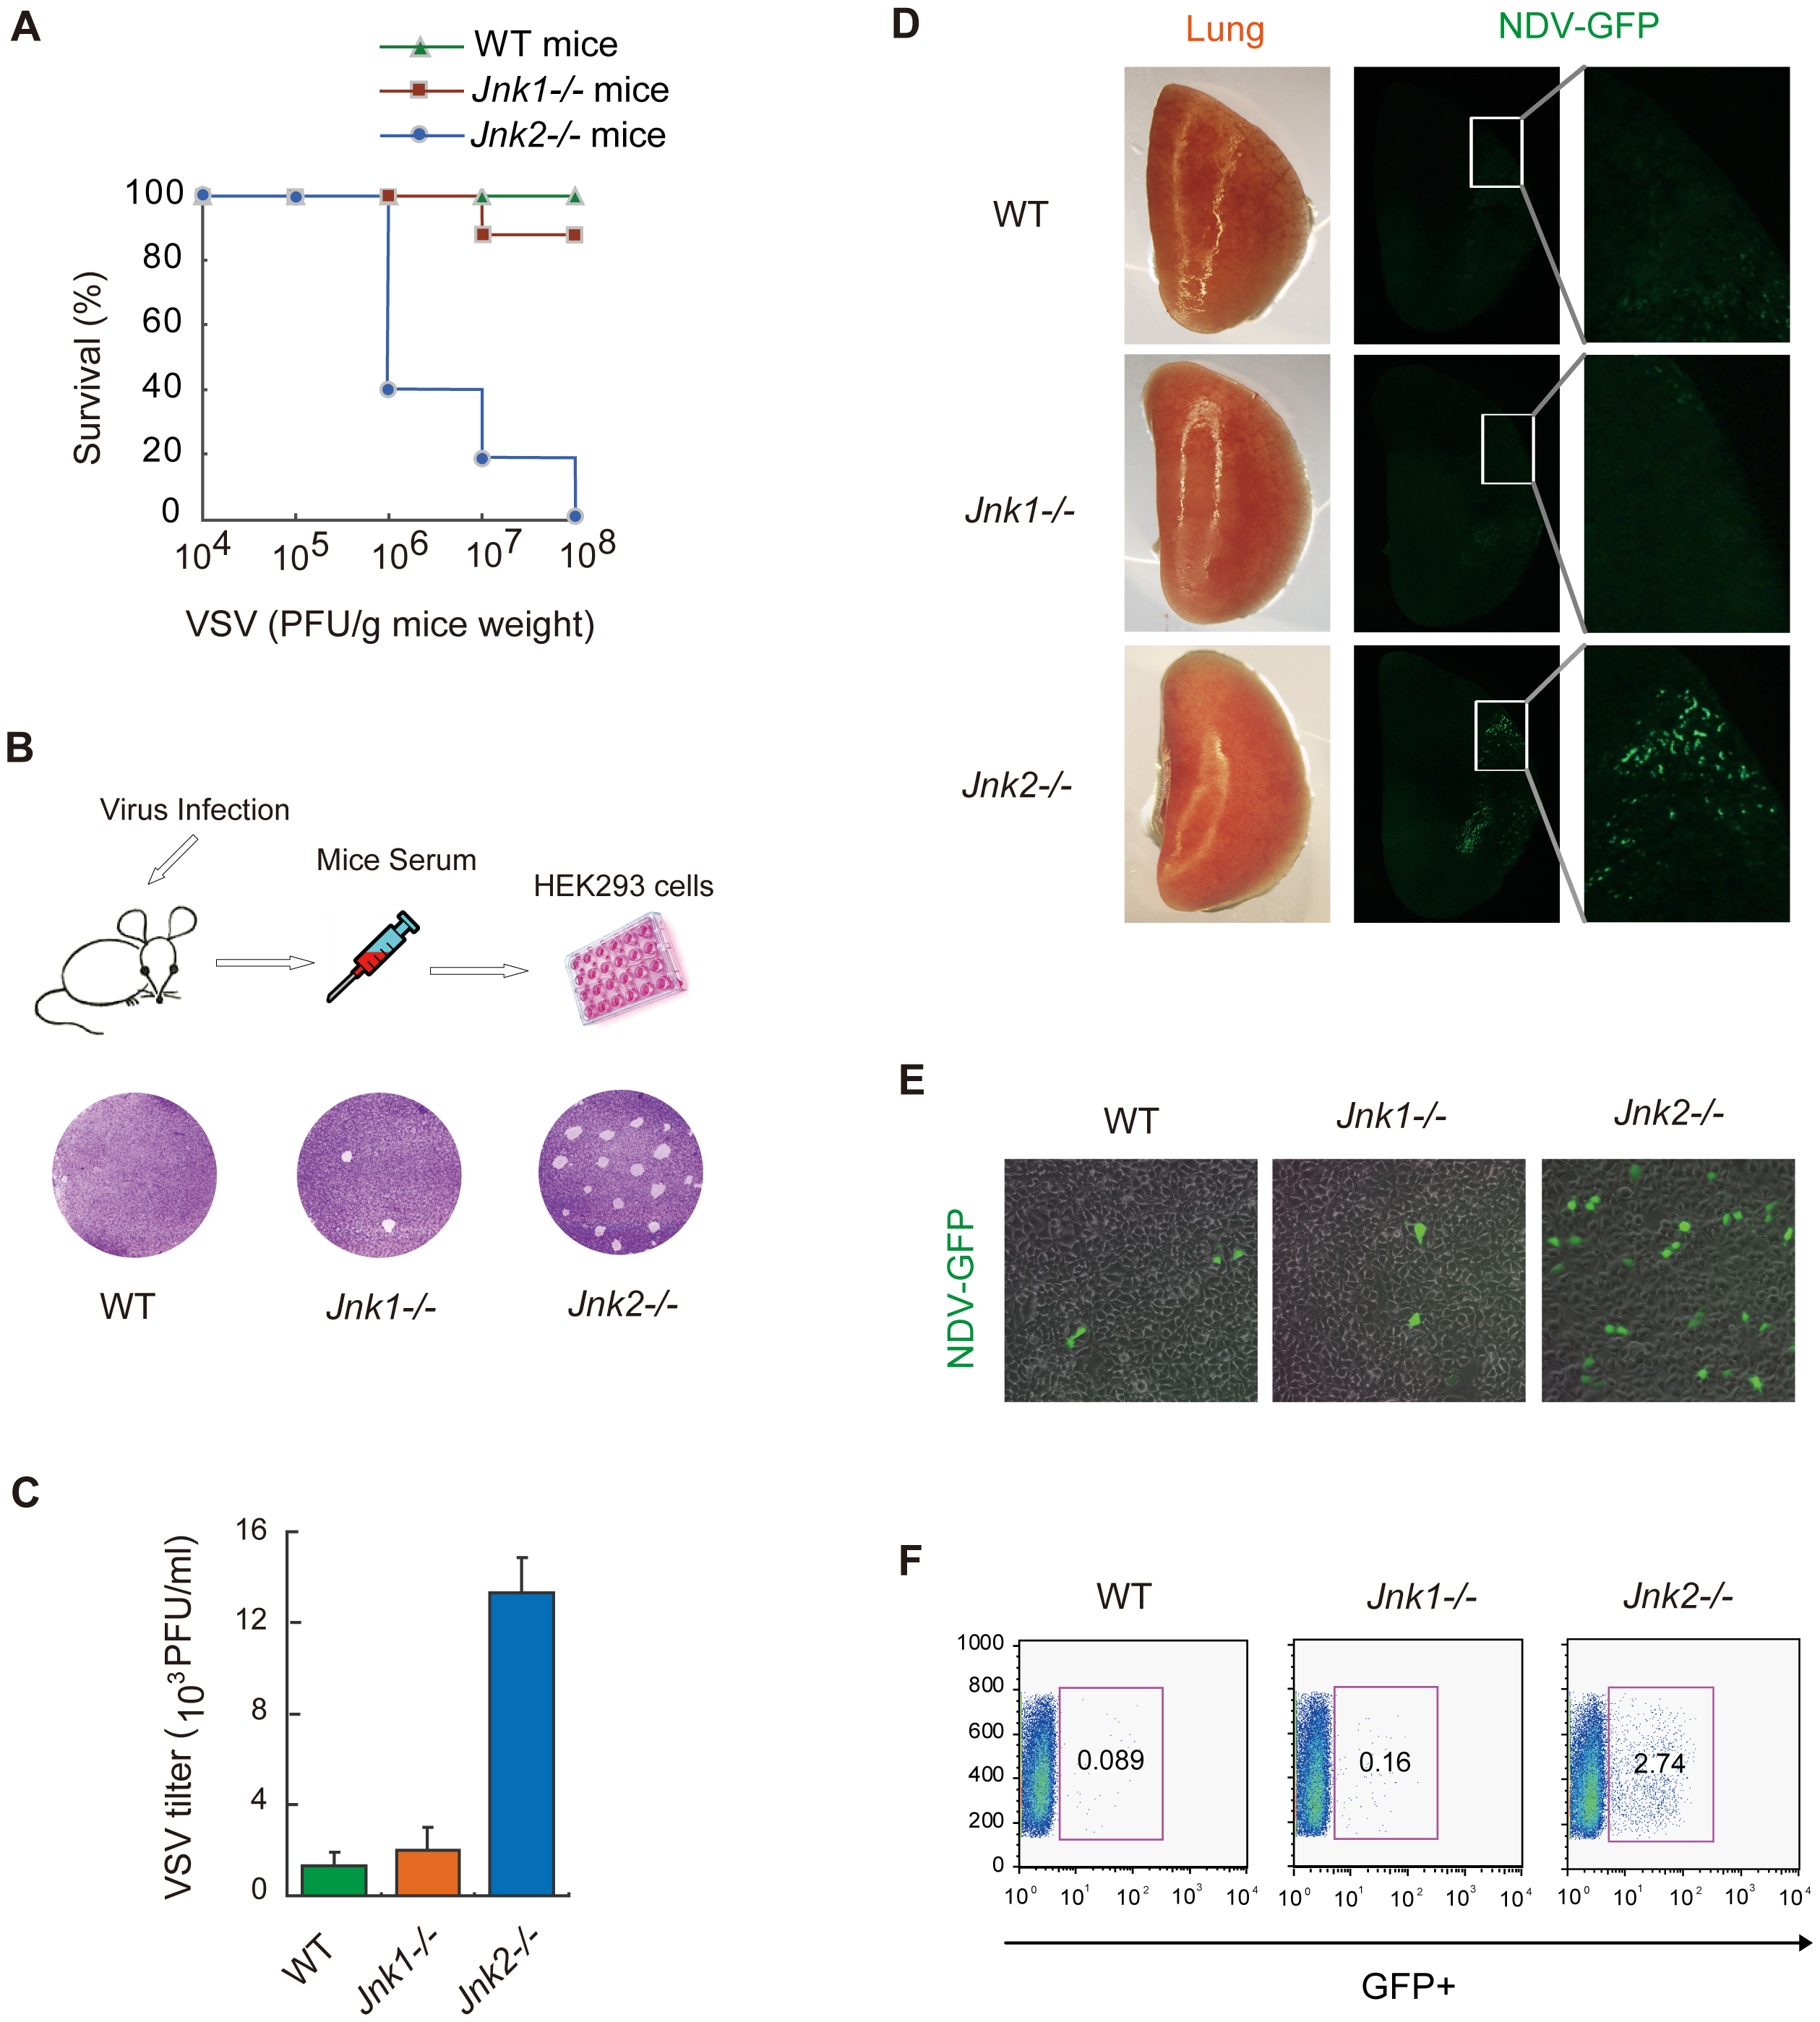 JNK2, but not JNK1, protects mice against viral infection <i>in vivo</i>.